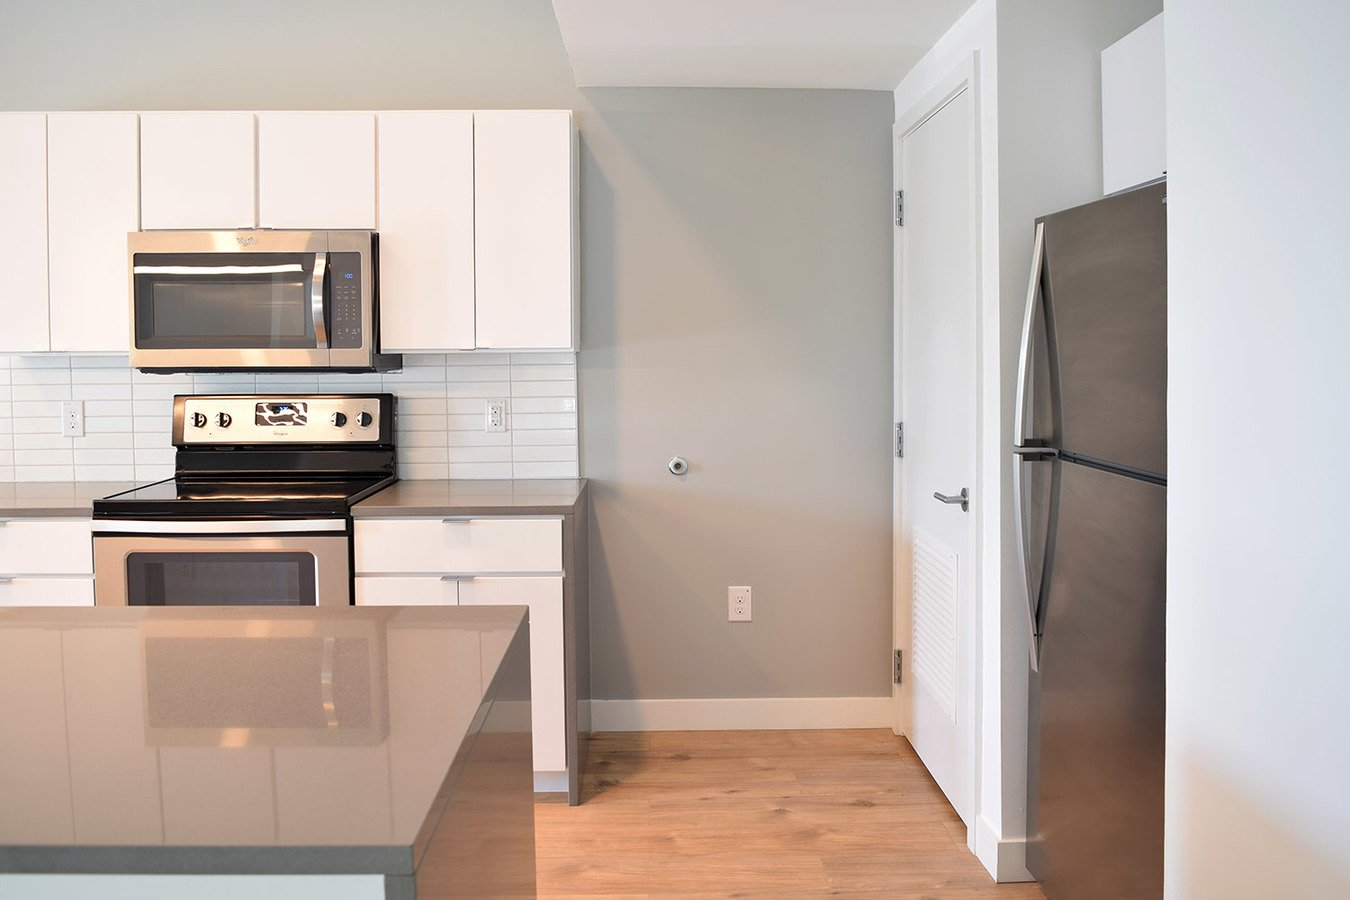 2 Bedrooms 2 Bathrooms Apartment for rent at 3435 Main in Kansas City, MO